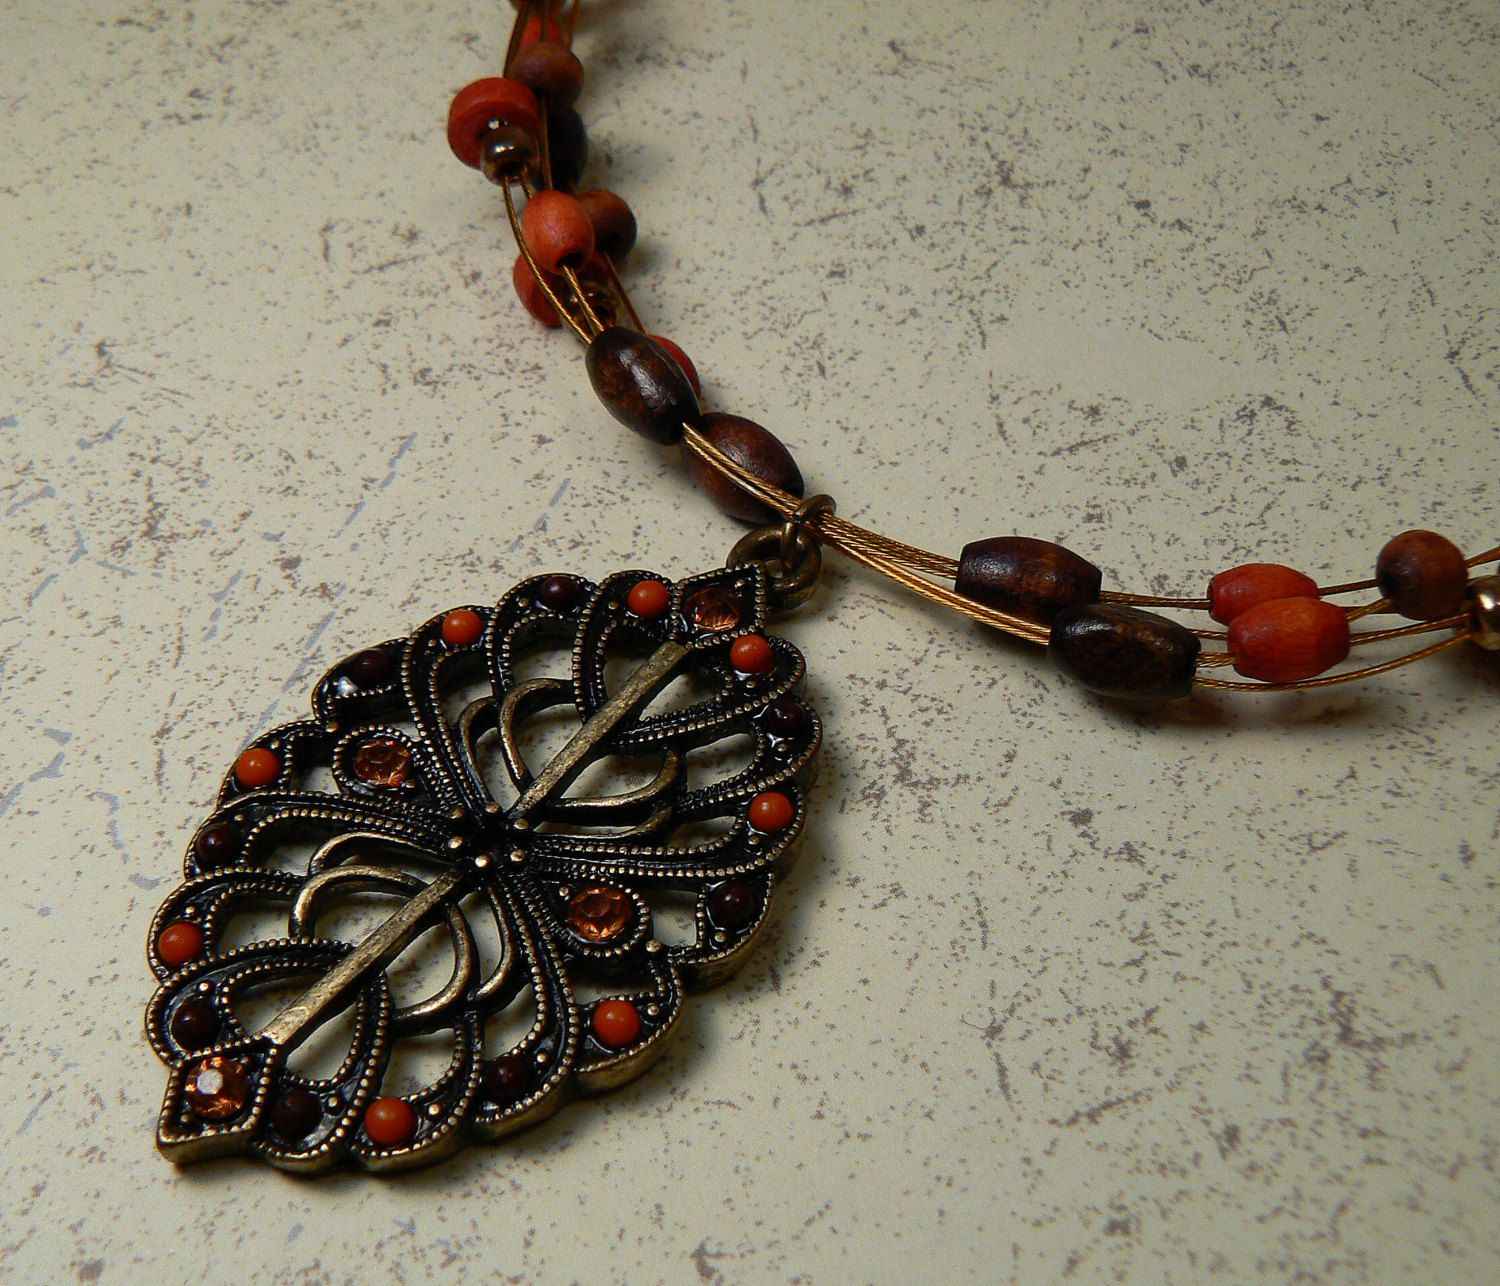 wood closures for multi-strand necklaces - Yahoo! Search Results